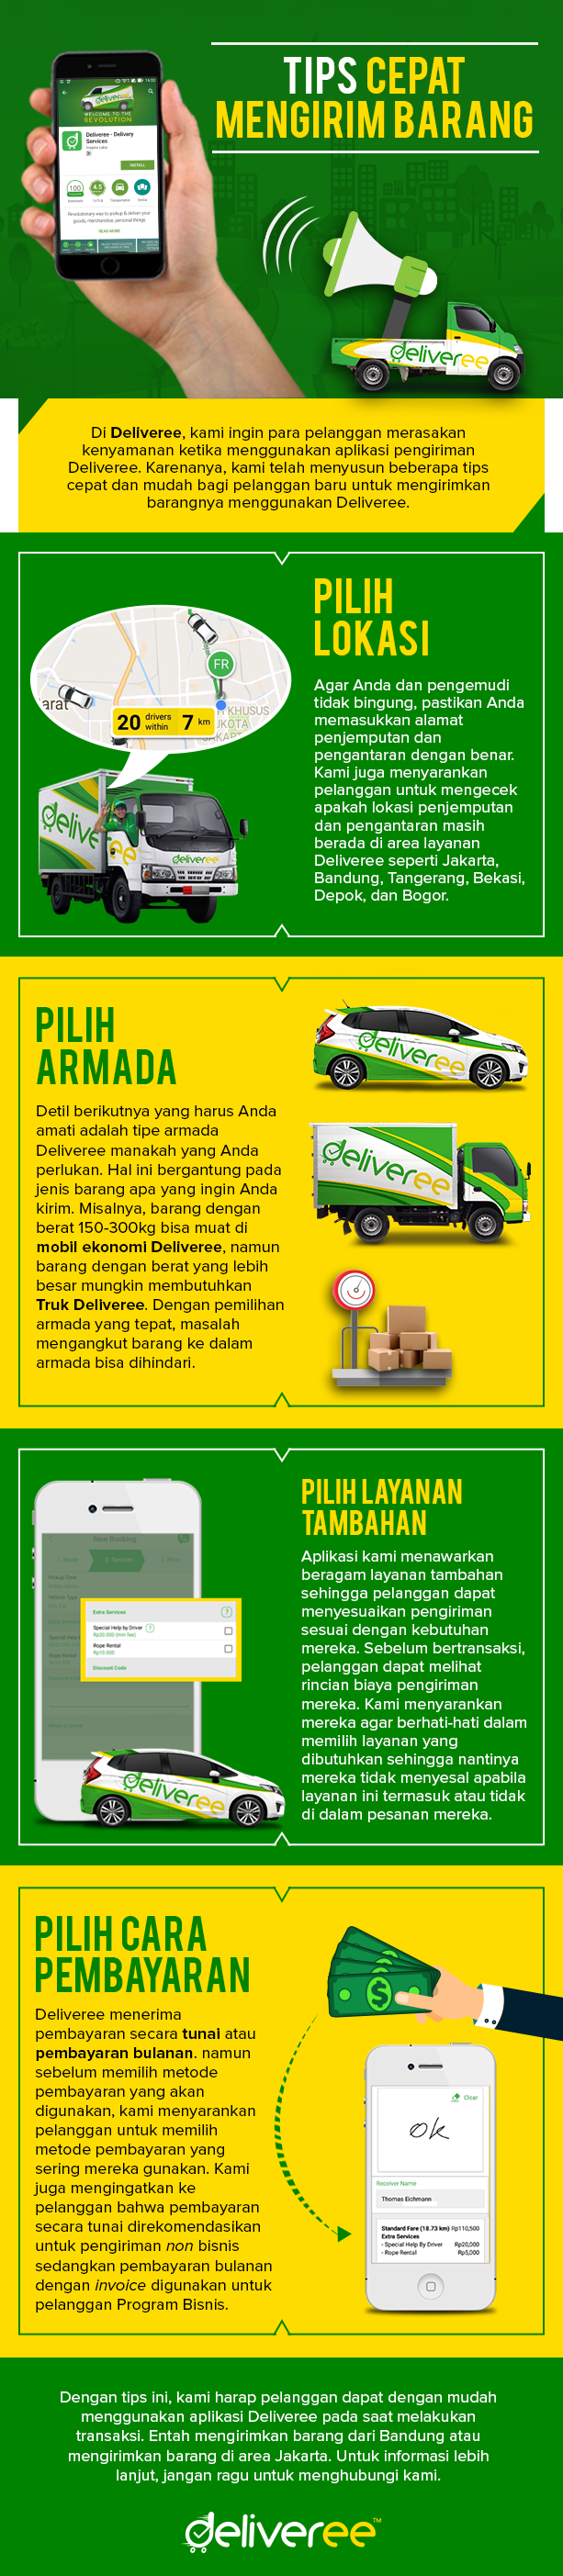 Jasa Pengiriman Barang Transportation Services Delivery Companies Supply Chain